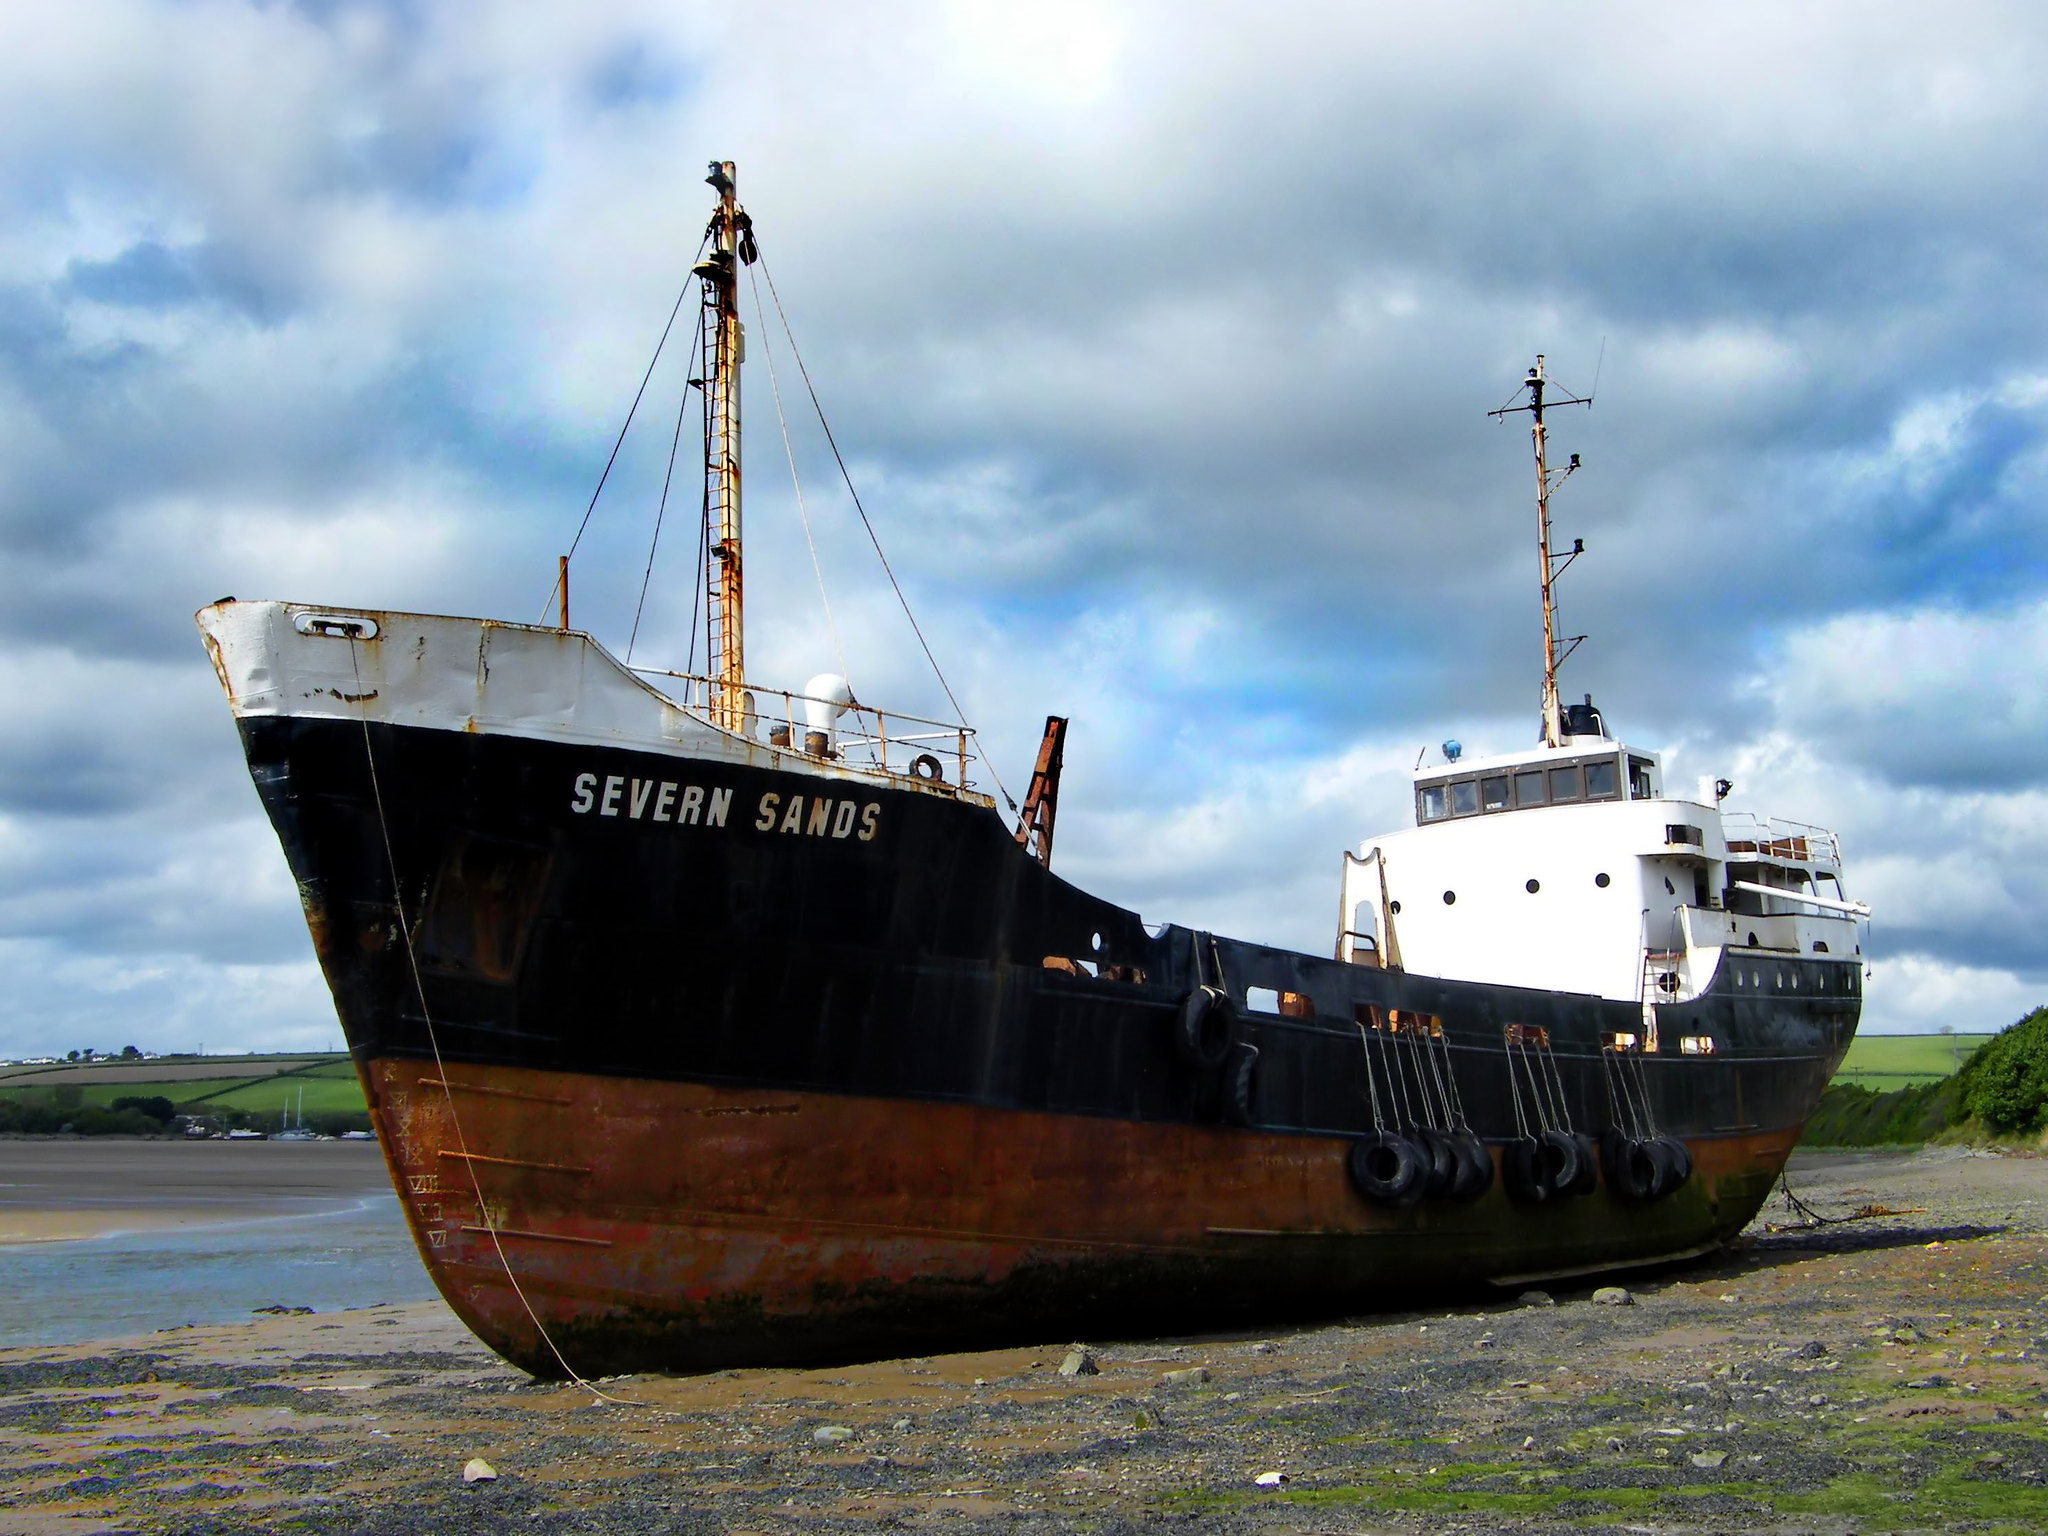 The rusty derelict dredger ship Severn Sands is run aground in Fremington Quay